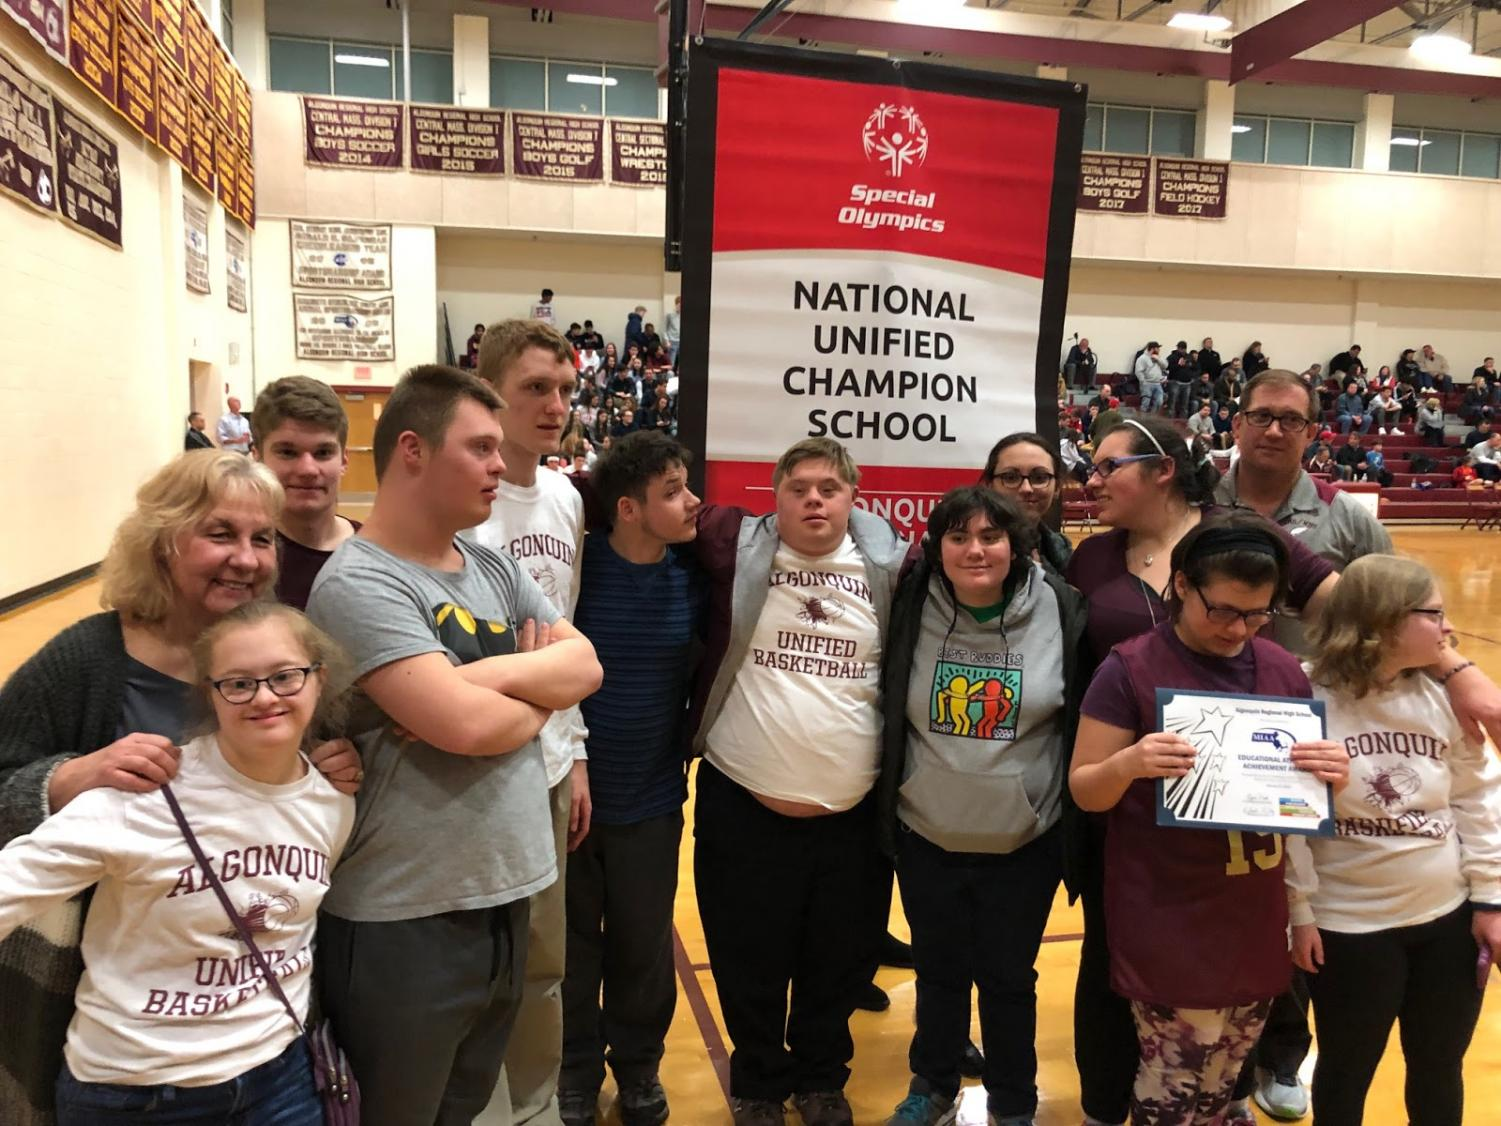 Members of the unified basketball and unified track teams celebrate awards recognizing inclusivity.